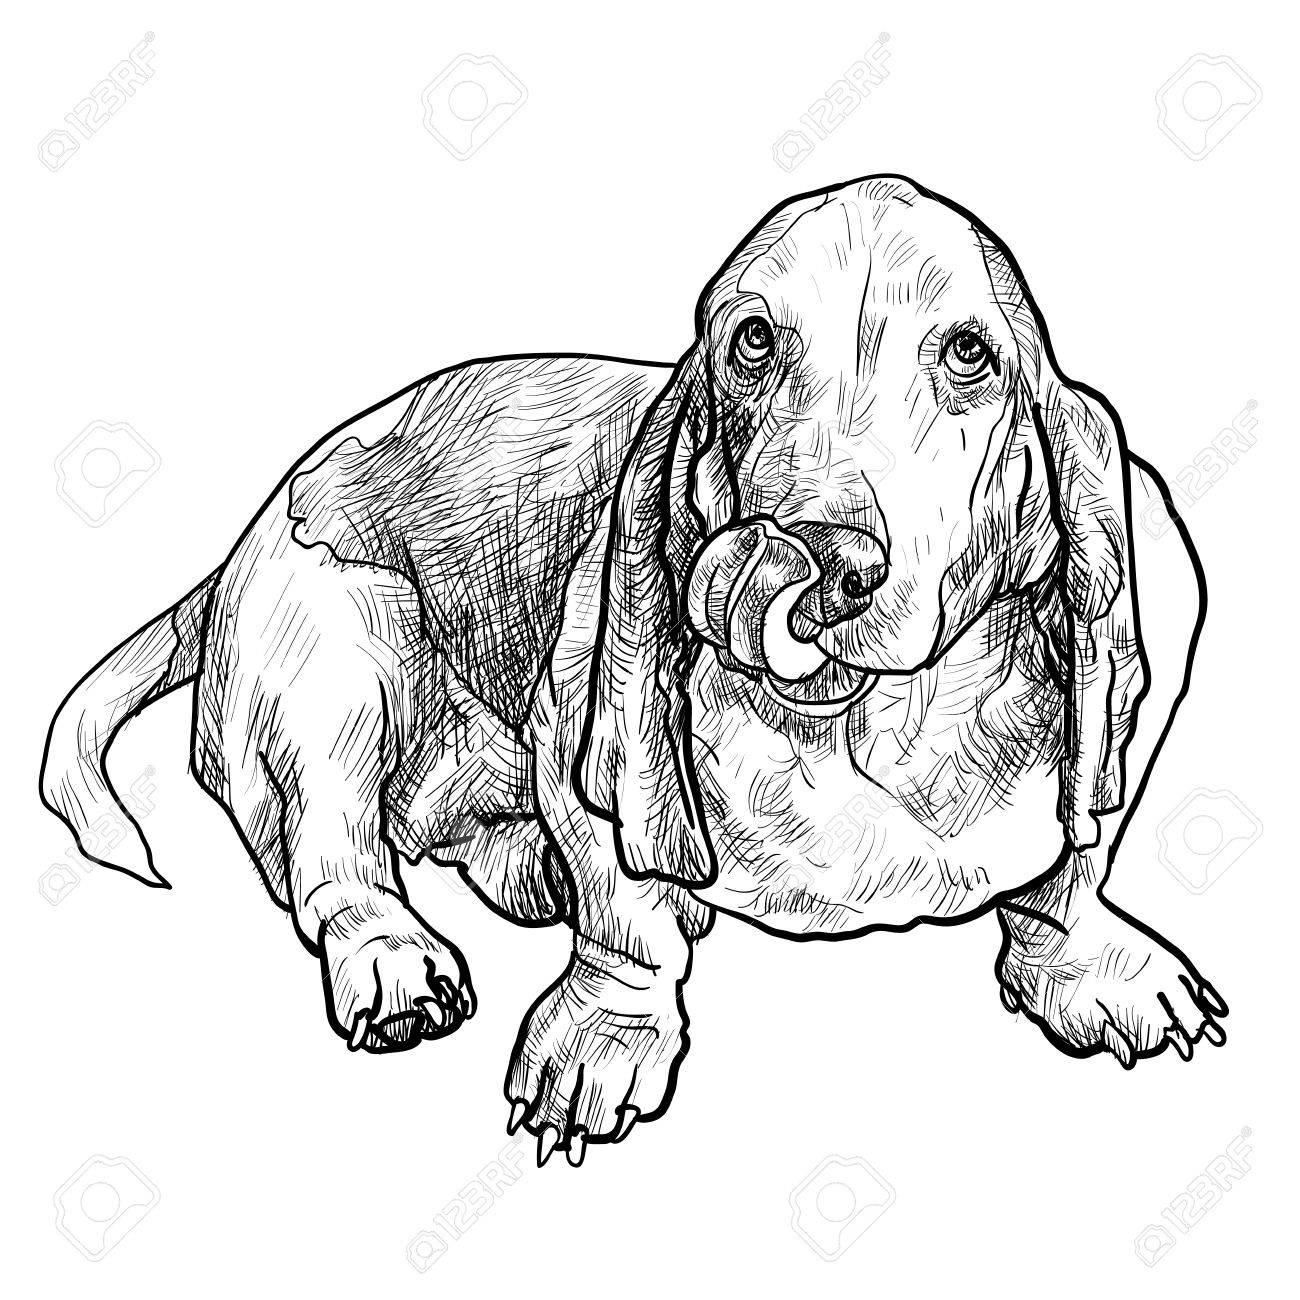 1300x1300 Adorable Basset Hound Dog Sitting And Stick Out It's Tongue